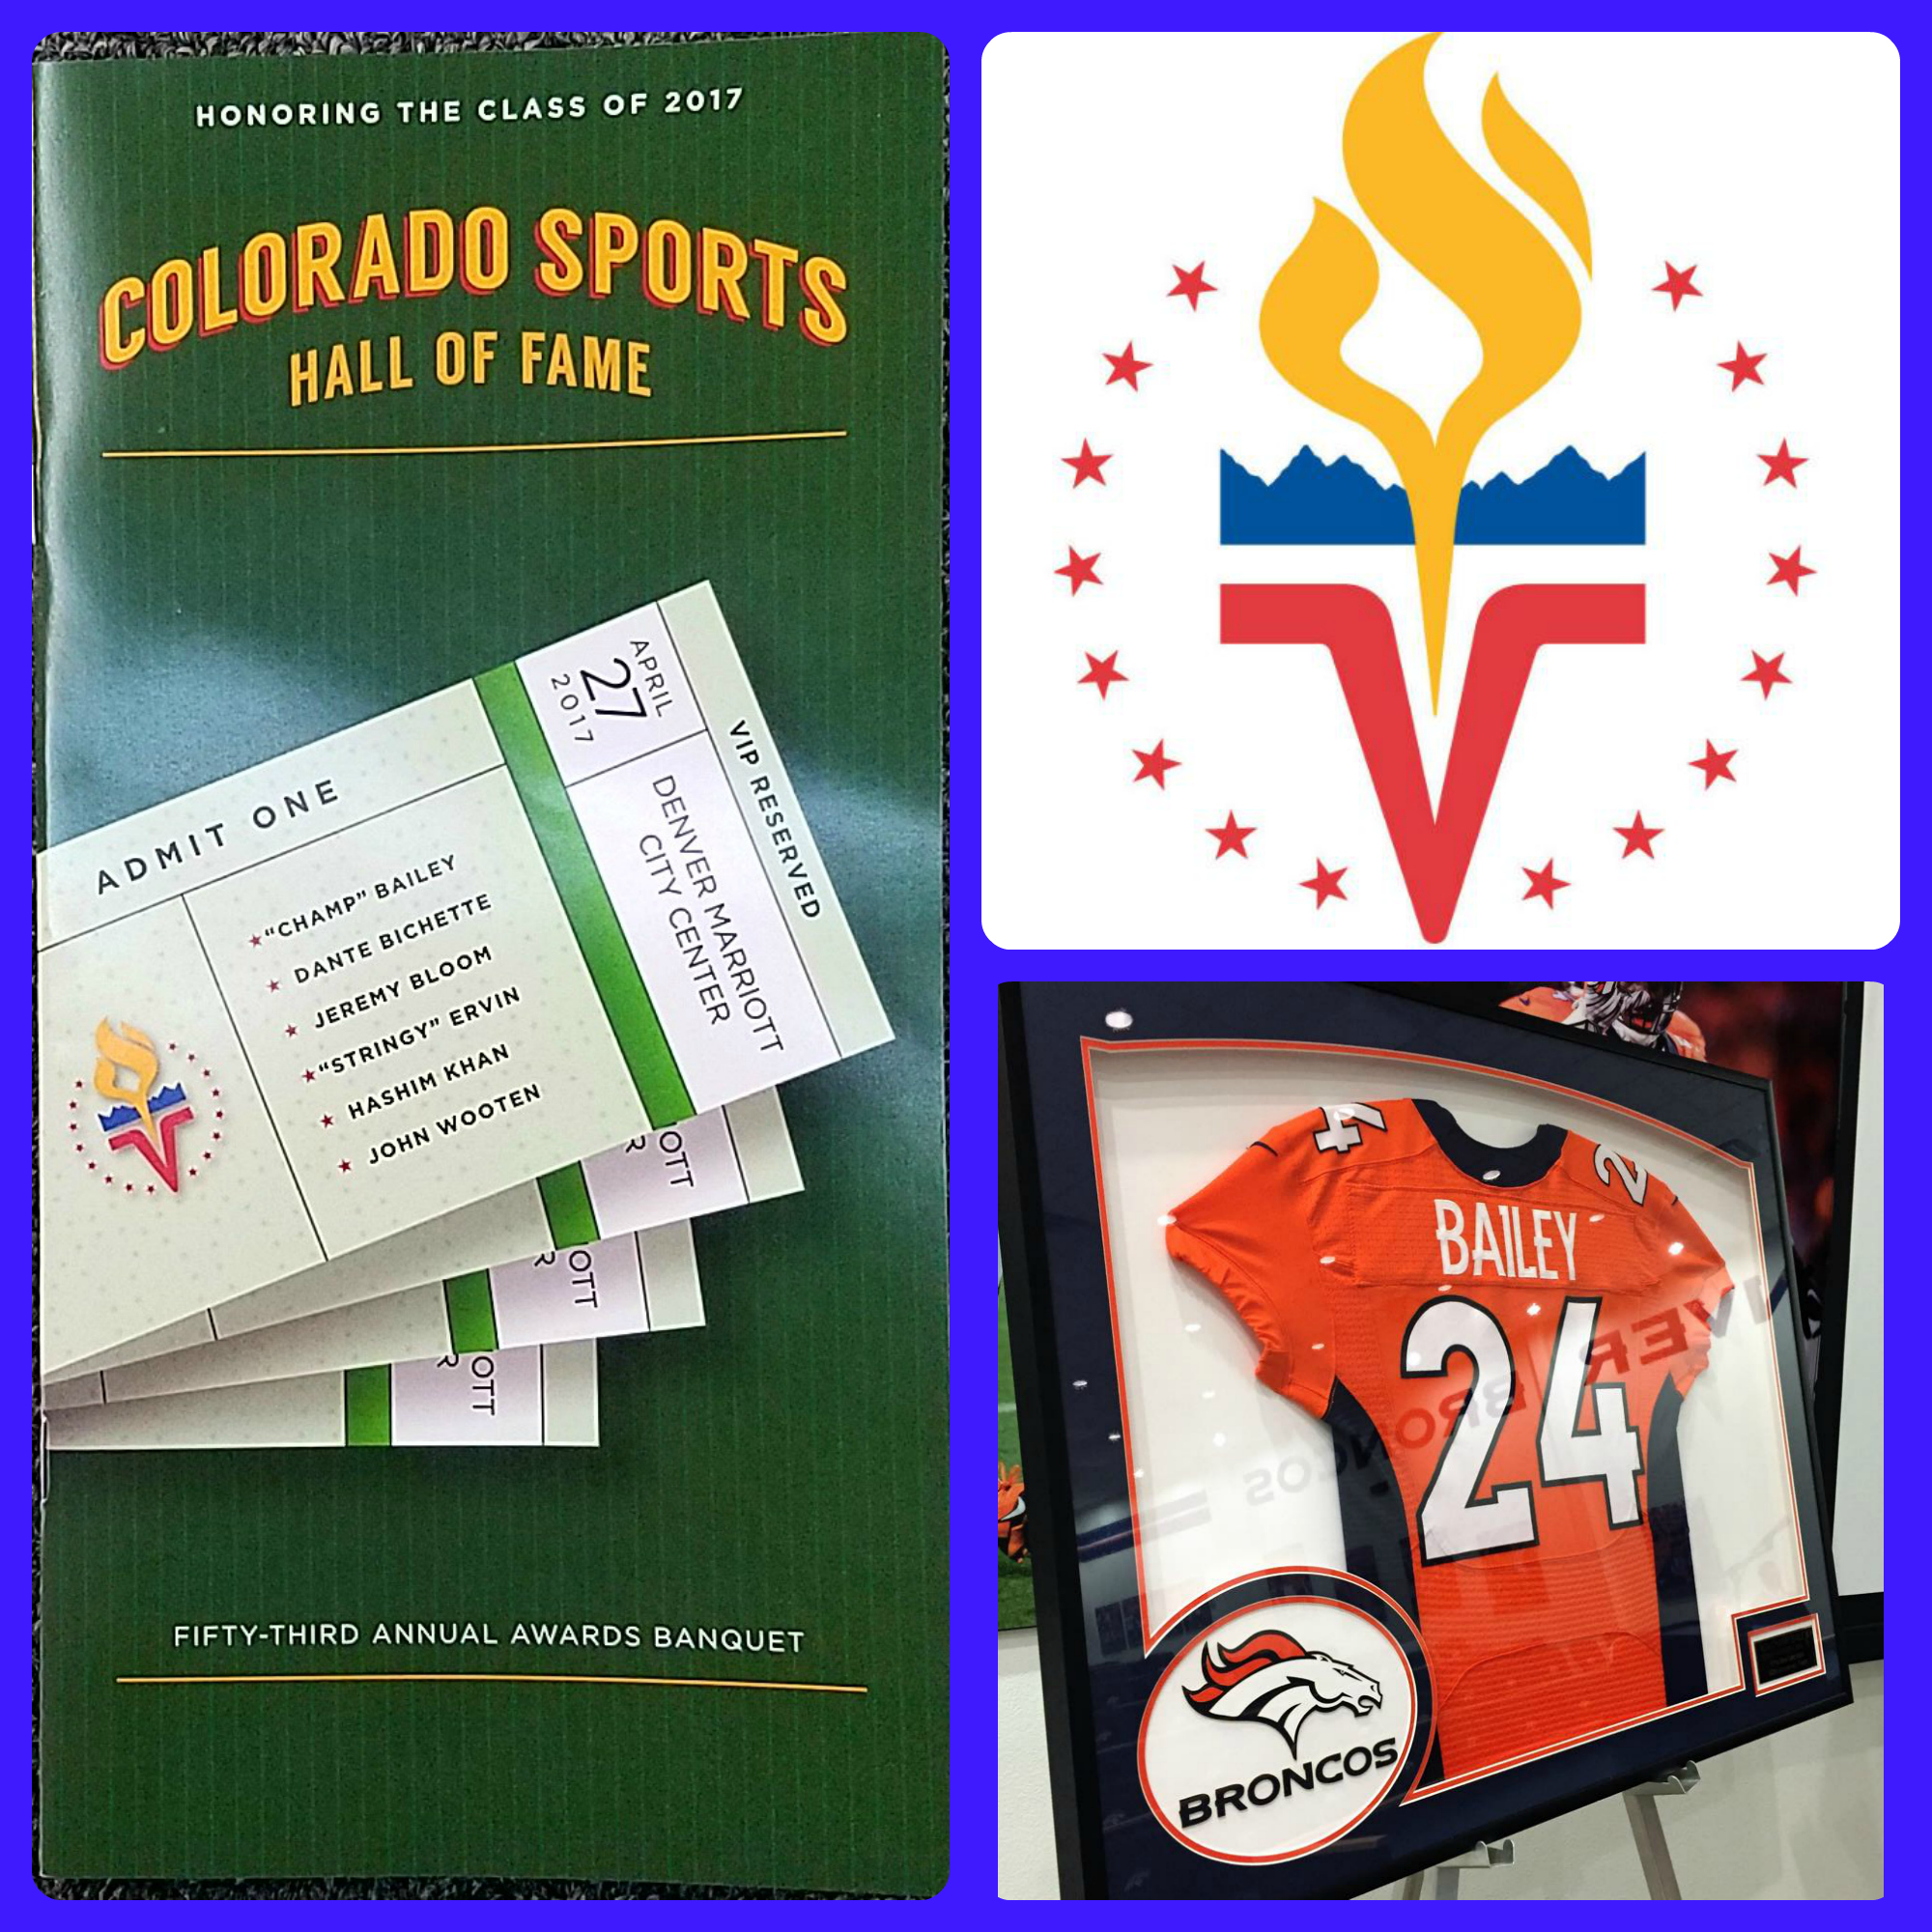 Congratulations to the 2017 Colorado Sports Hall of Fame Inductees